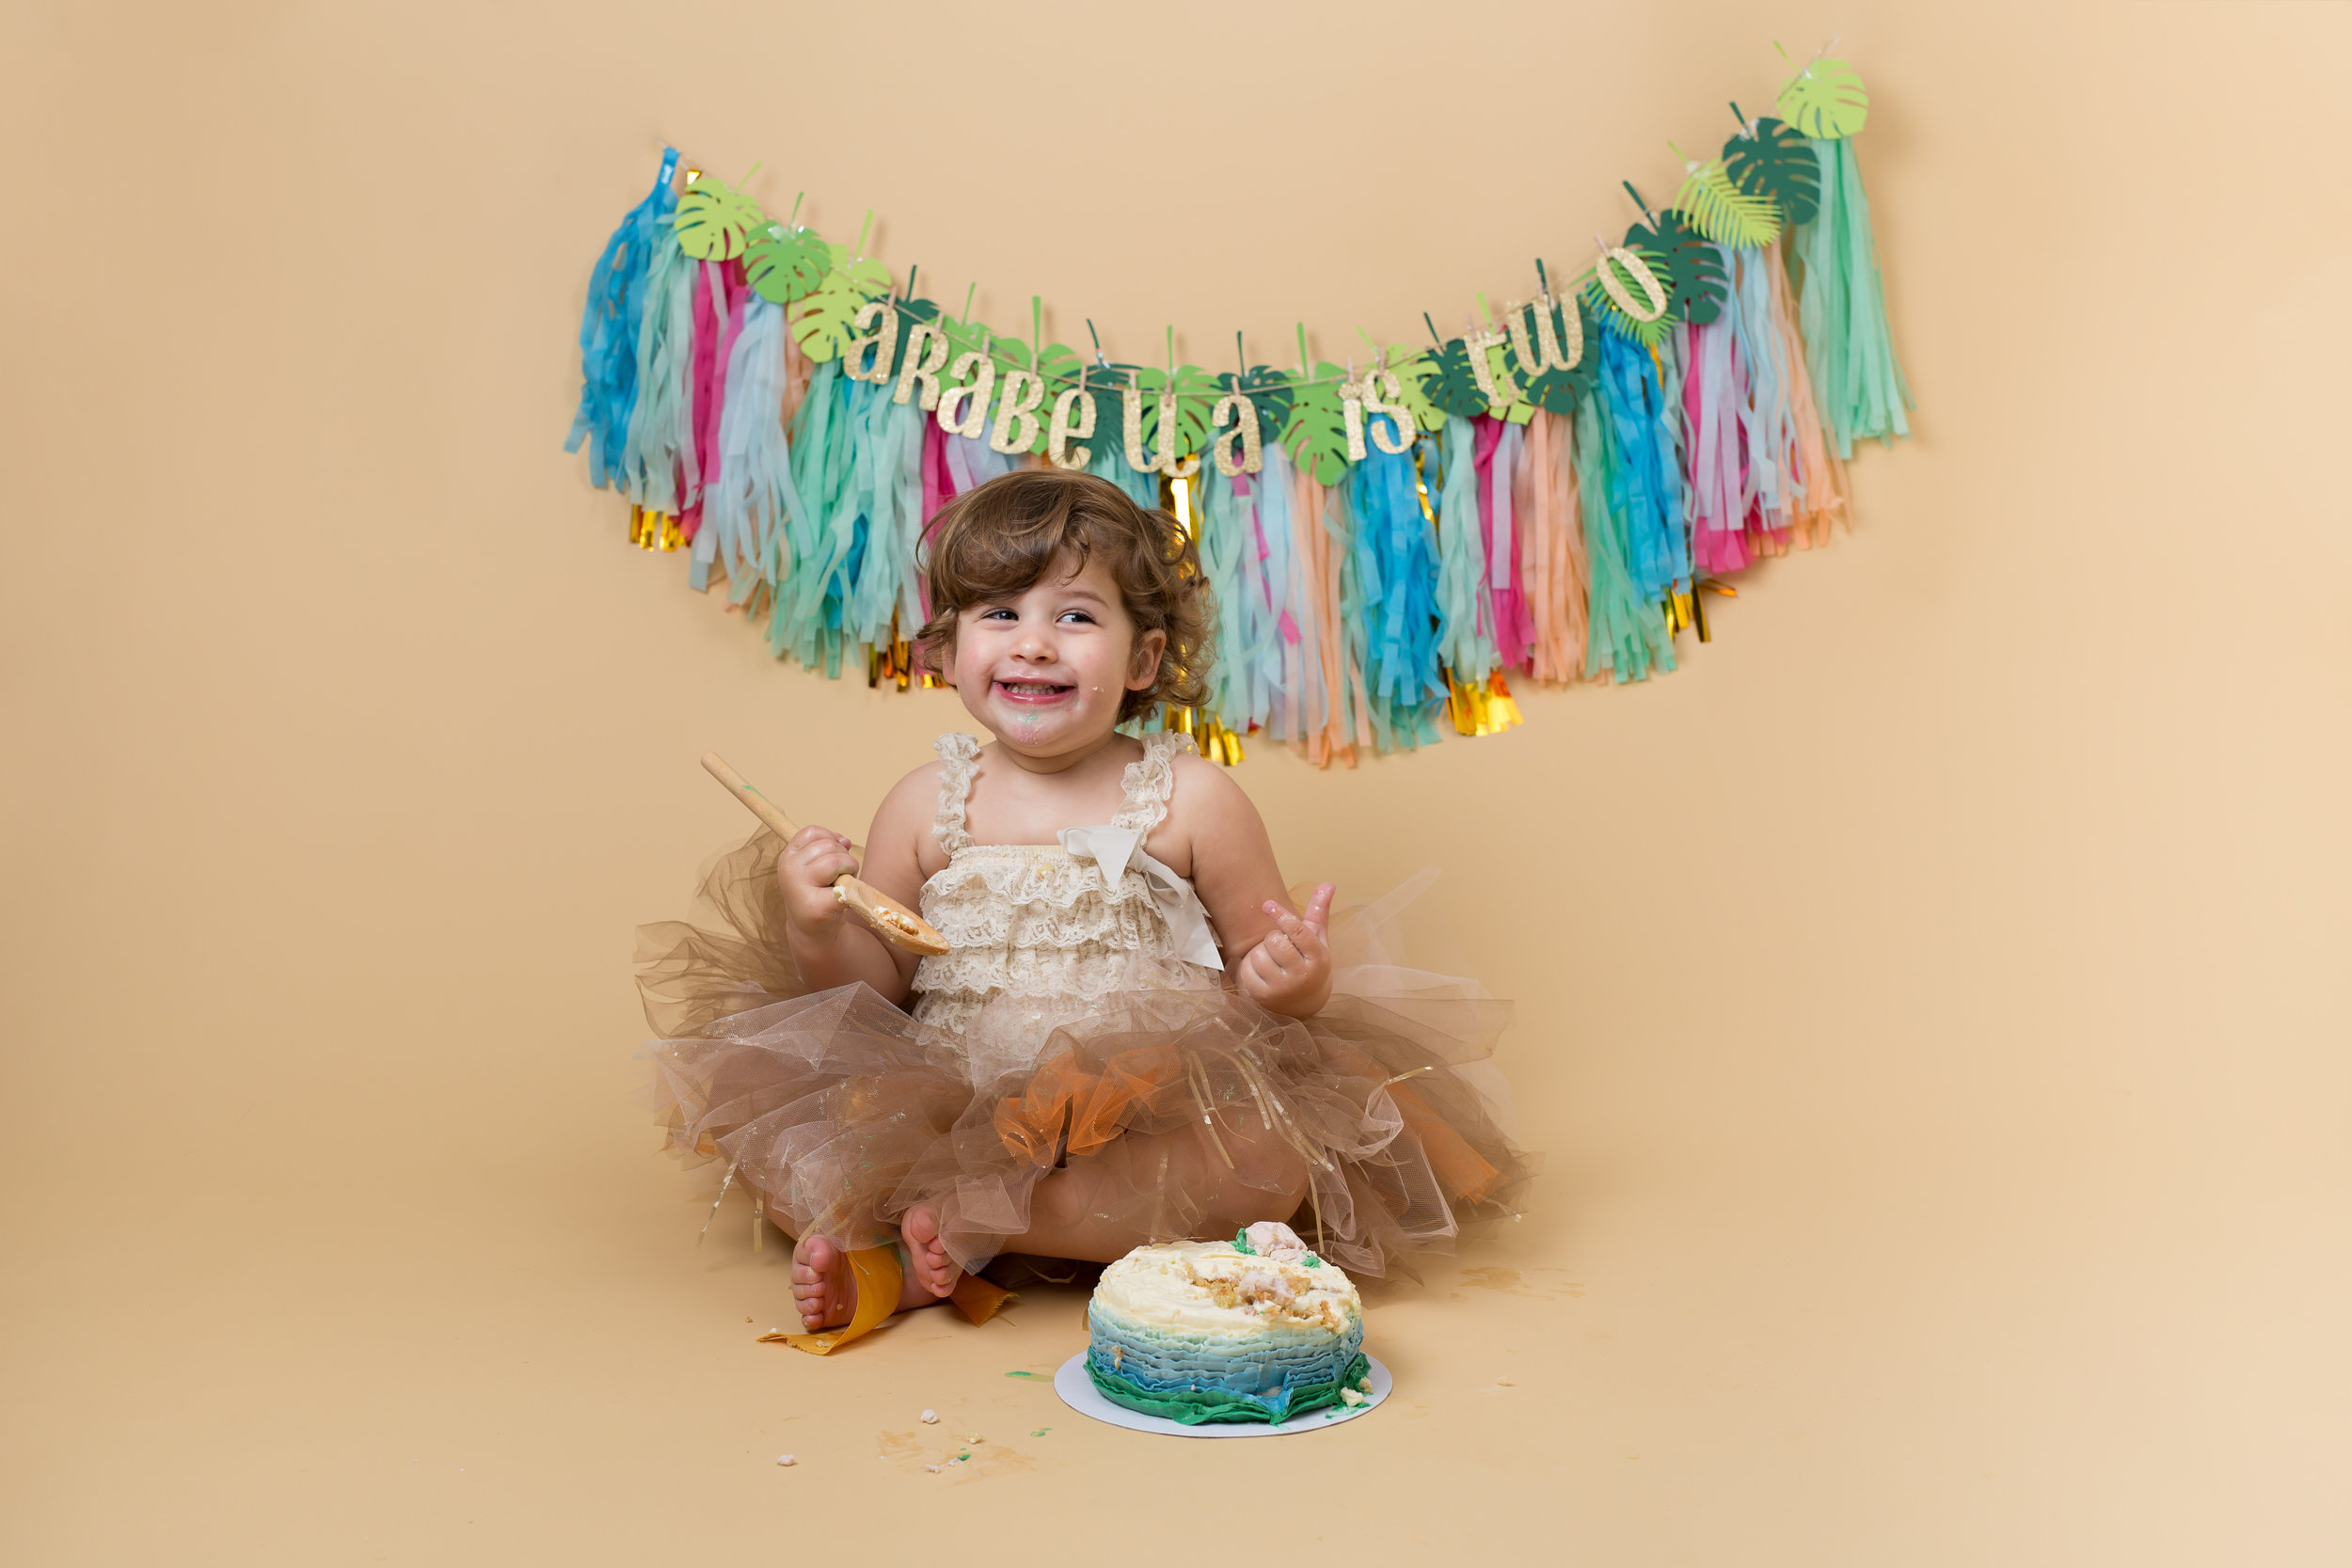 Karen Kimmins photography - Cake smash sessions. .jpg